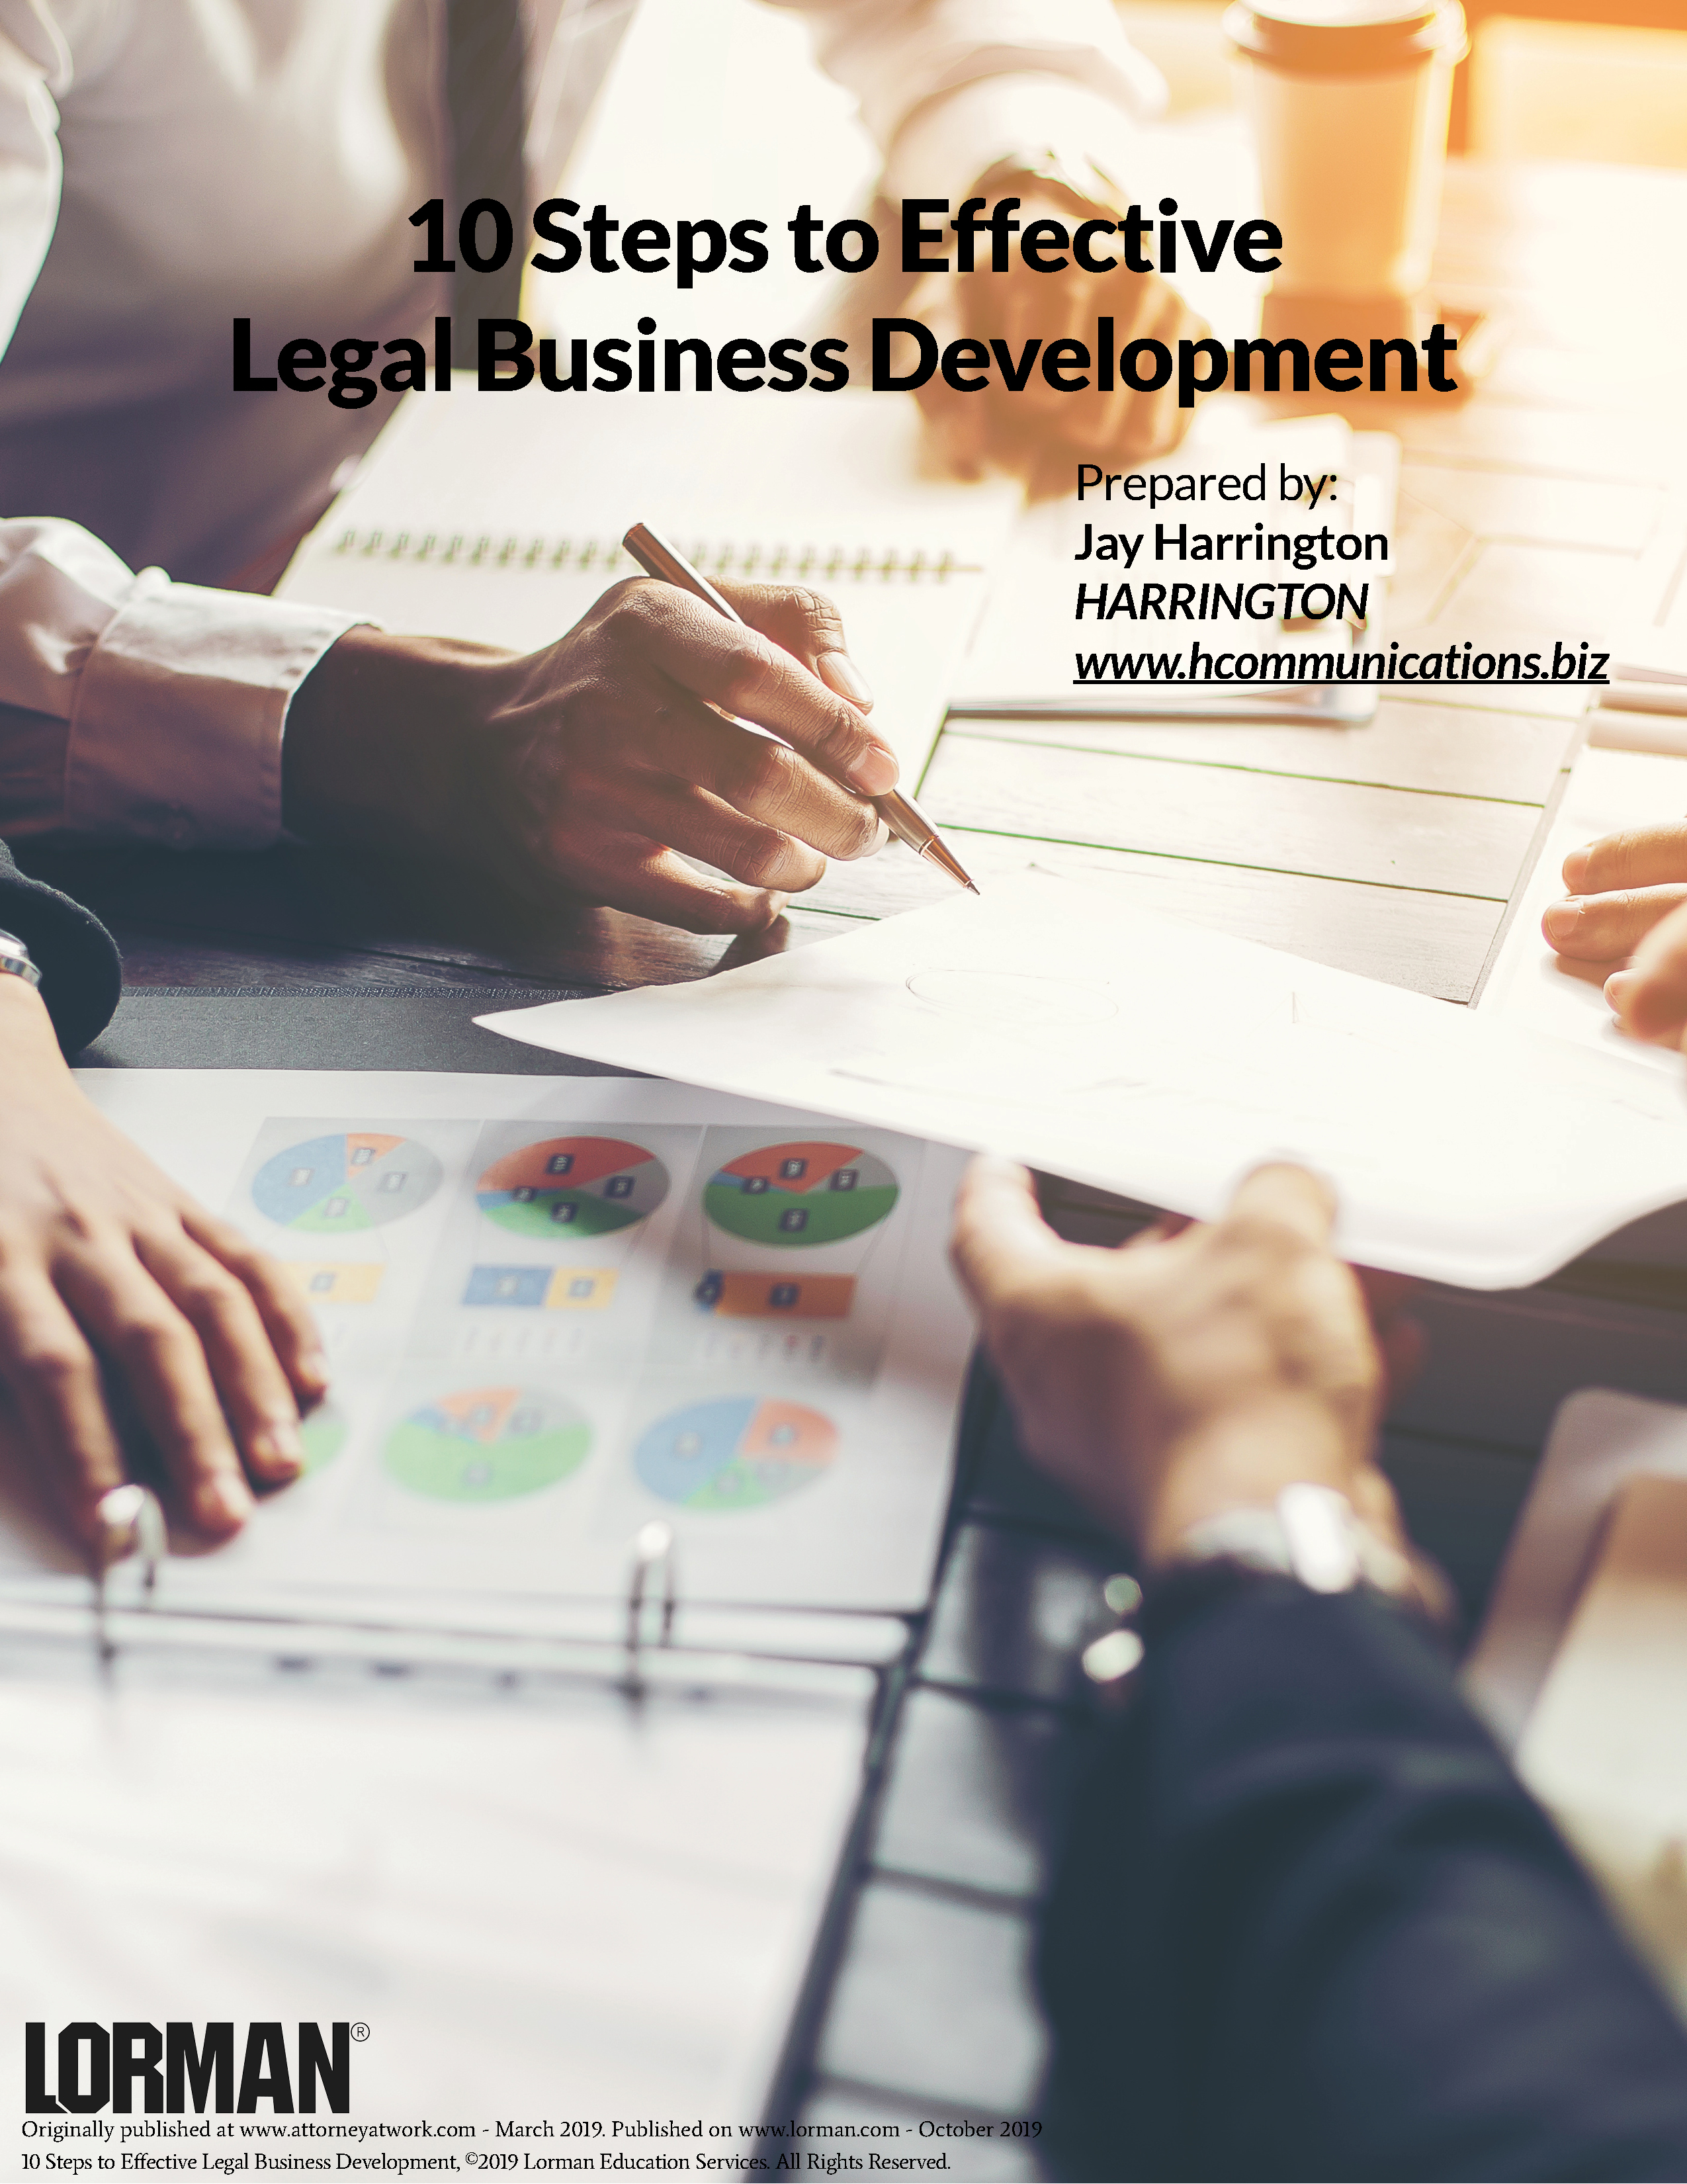 10 Steps to Effective Legal Business Development